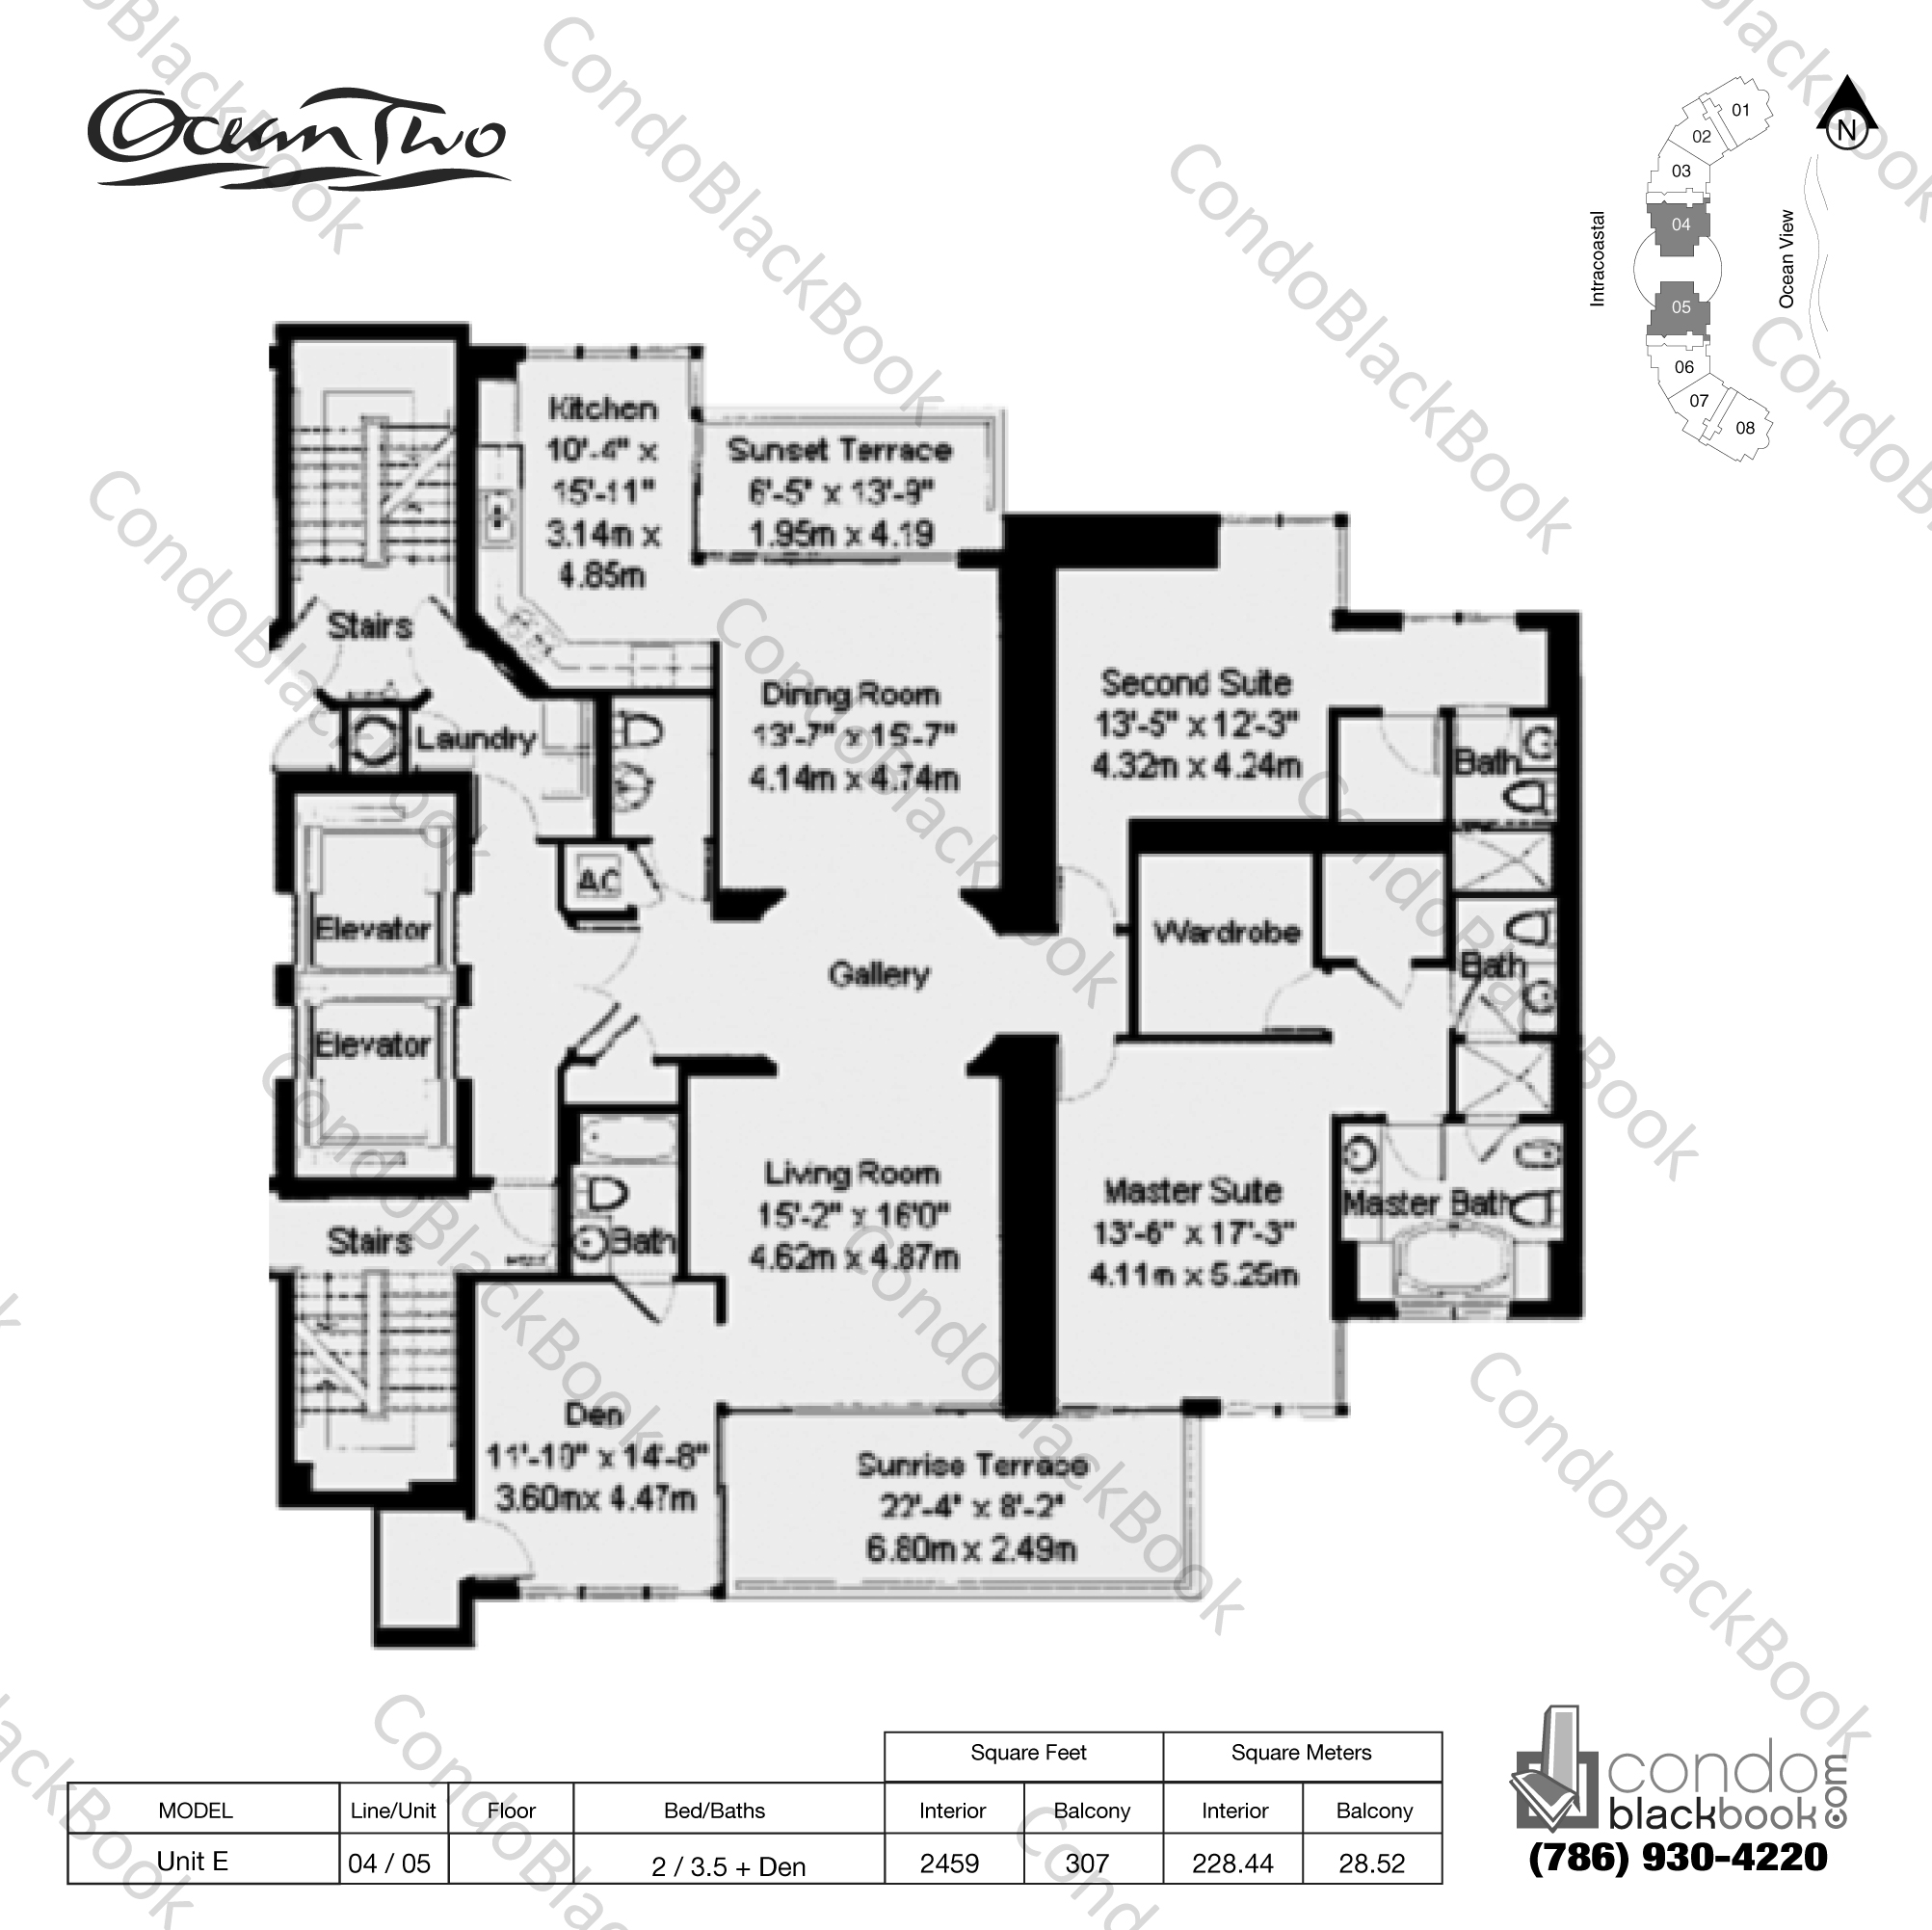 Floor plan for Ocean Two Sunny Isles Beach, model Unit E, line 04 , 05, 2 / 3.5 + Den bedrooms, 2459 sq ft